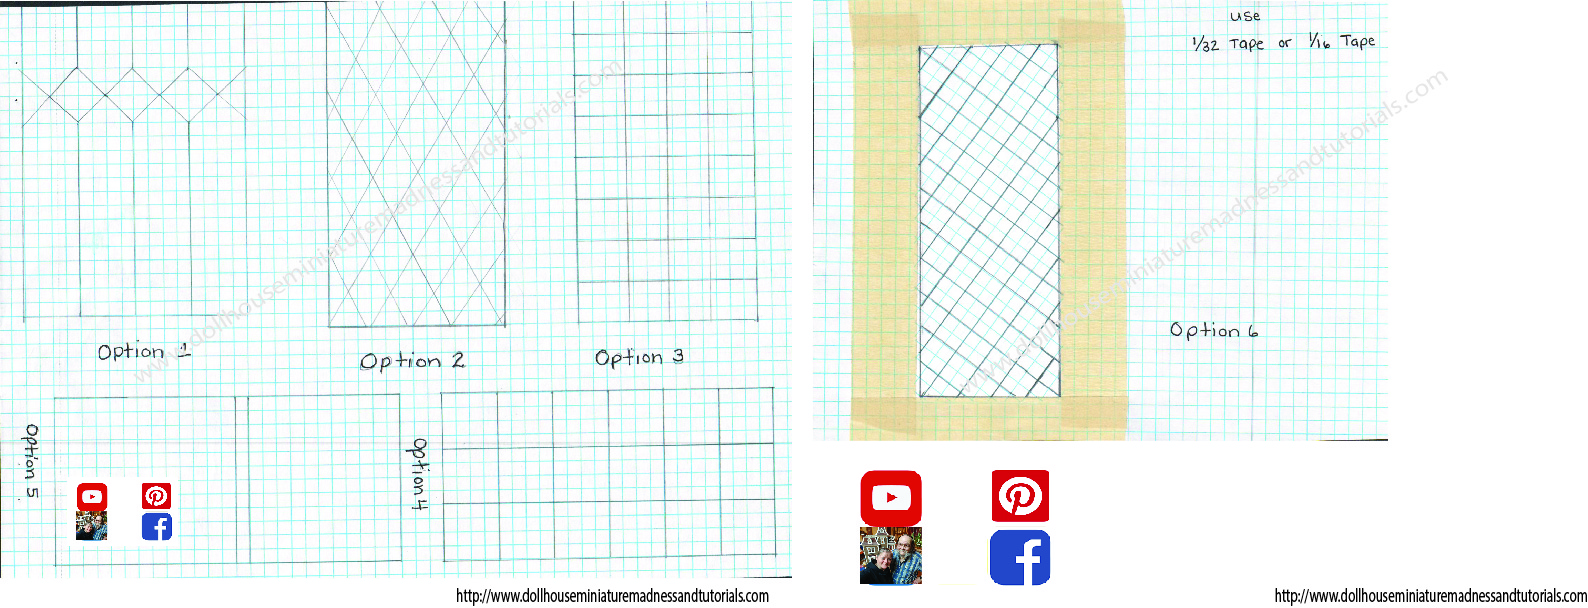 Templates Other Misc Dollhouse Miniature Madness And